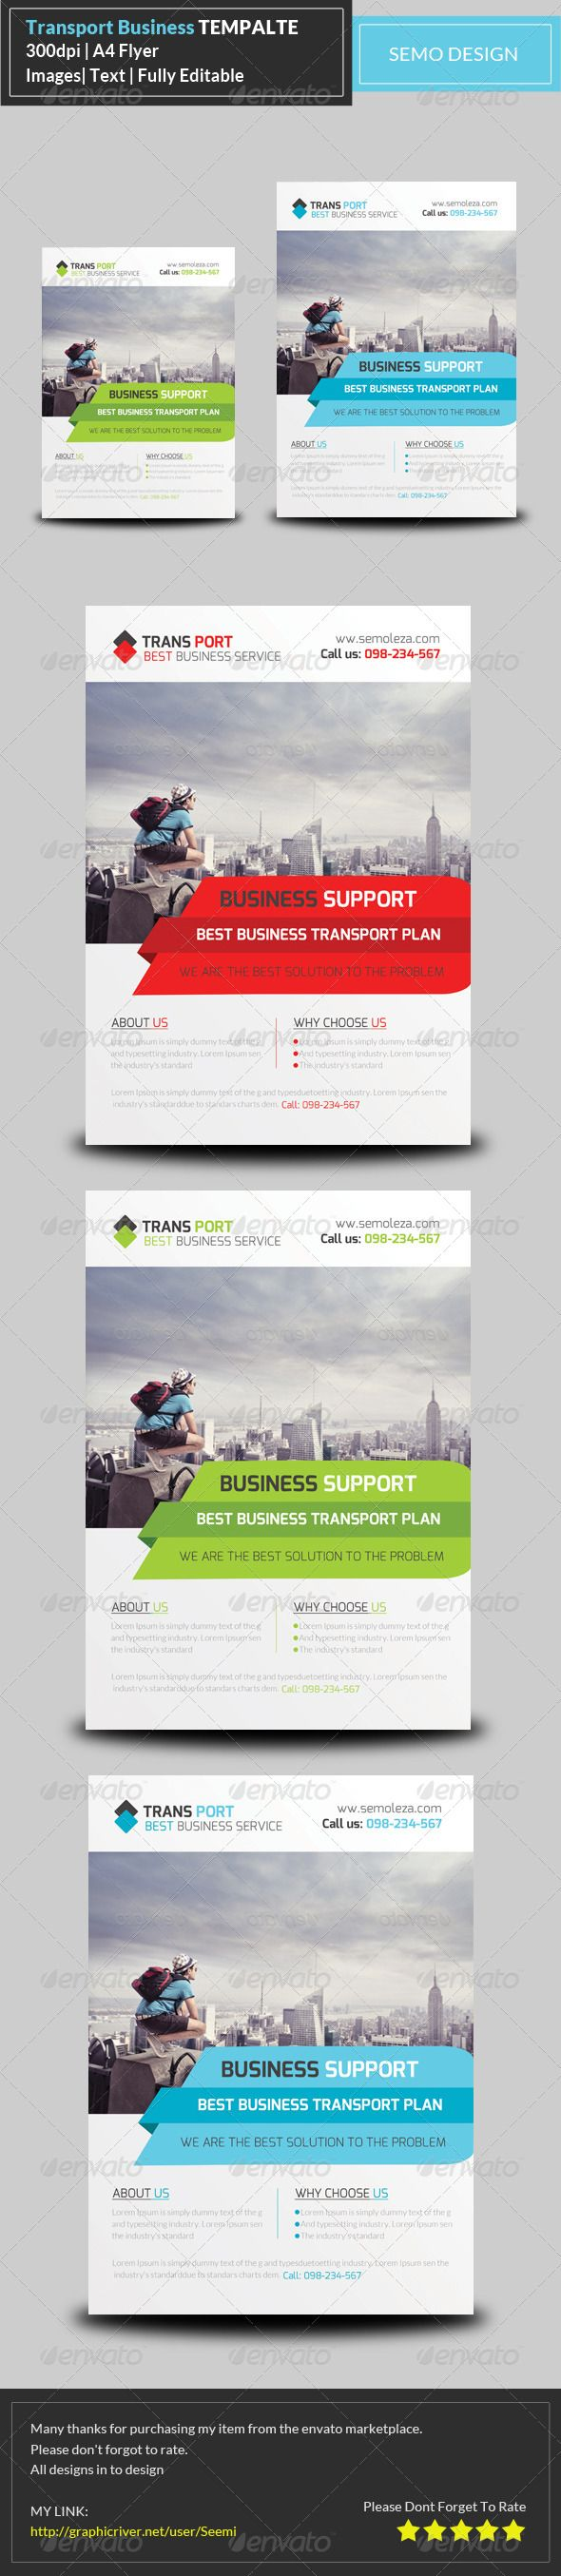 Transport Business Flyer Template - Corporate Flyers